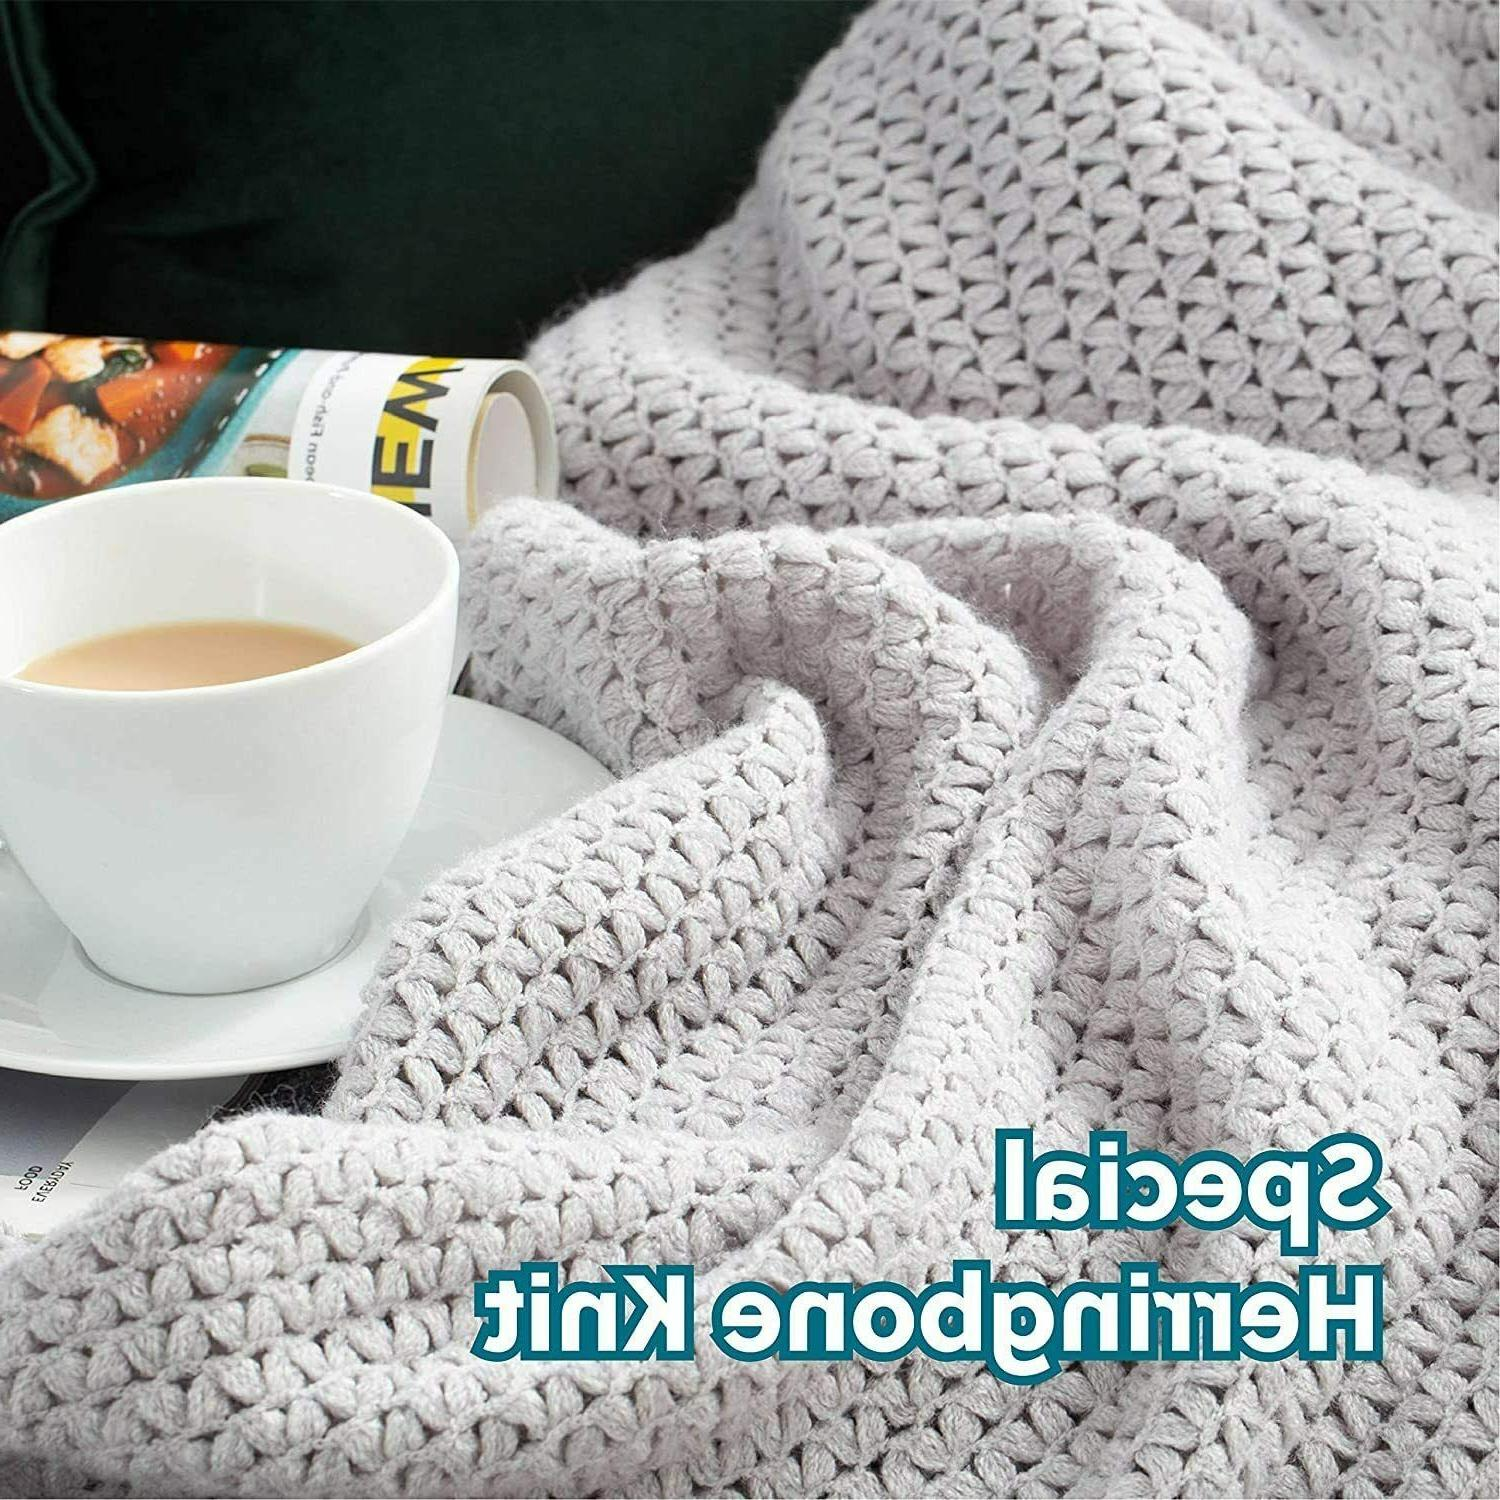 Bedsure Couch Soft Woven Blanket 50x60 Lightwe...